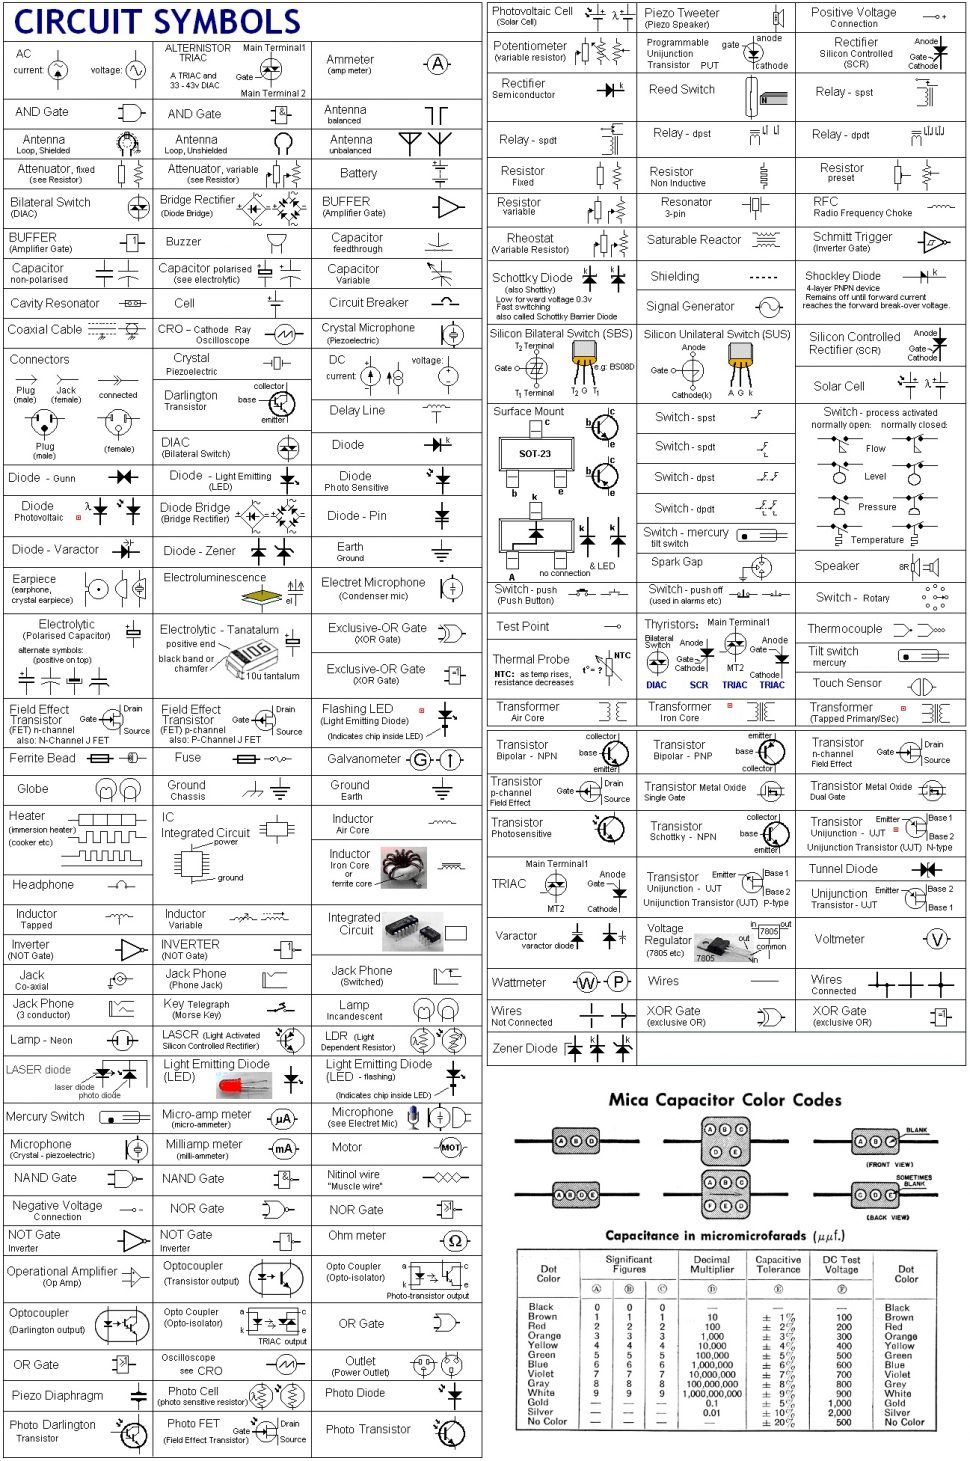 Componentwiring schematic symbols and meanings electrical download componentwiring schematic symbols and meanings electrical download wire autocad australian standards relay schematics for word chart pdf uk wire schematic cheapraybanclubmaster Images